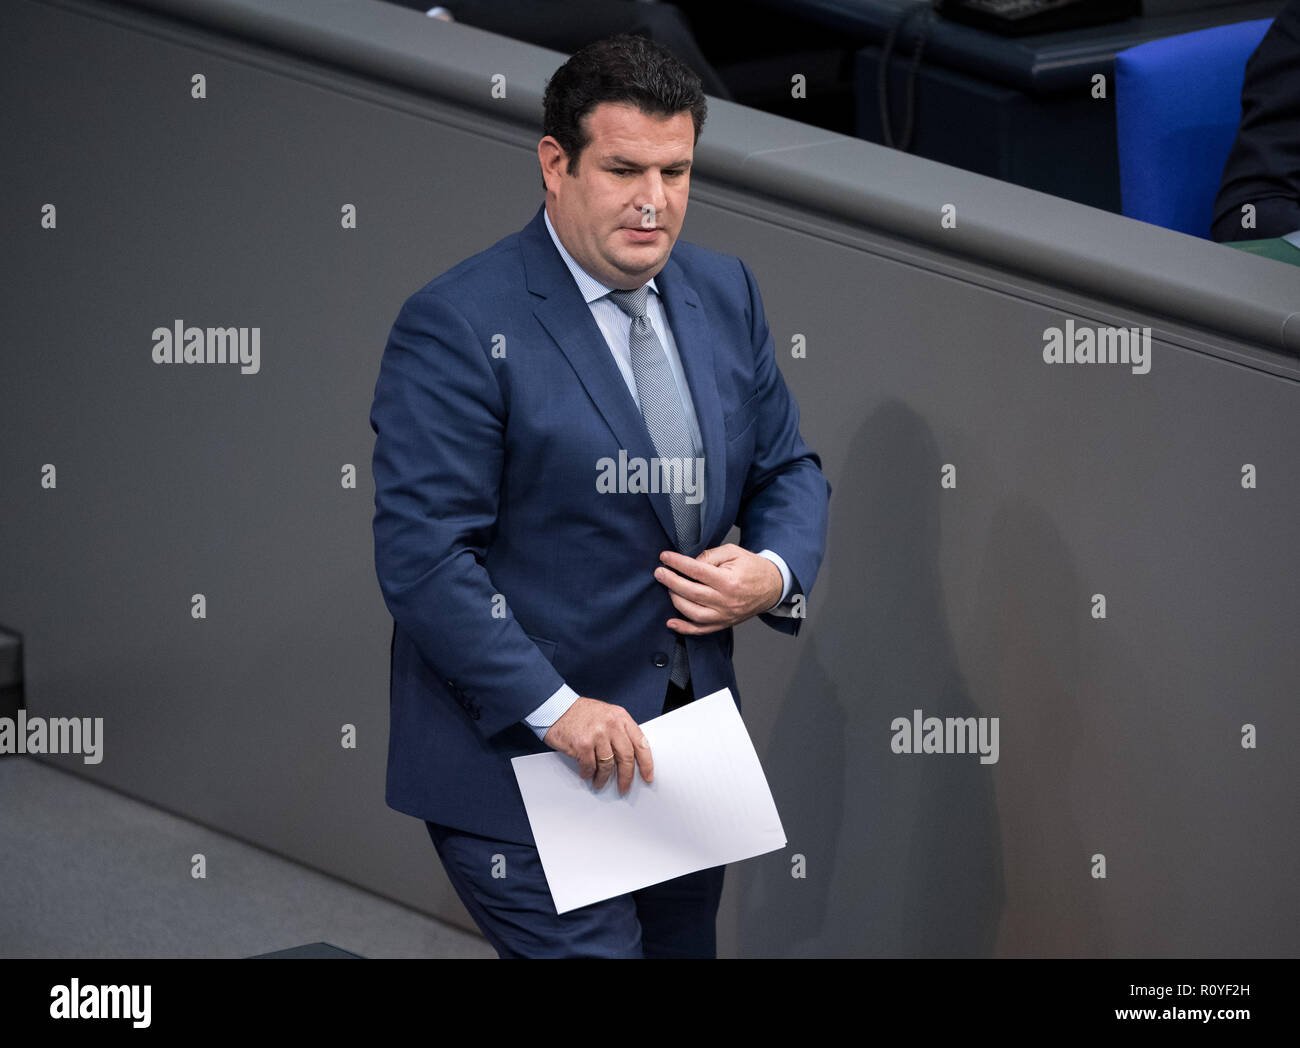 Berlin, Germany. 08th Nov, 2018. Hubertus Heil (SPD), Federal Minister of Labour and Social Affairs, will take the podium during the plenary session in the German Bundestag. Topics of the 61st session of the 19th legislative period include the pension package introduced by the Federal Government, additional safe countries of origin, tax relief for families, changes in asylum law, accelerated traffic planning and a current hour on the INF (Intermediate Range Nuclear Forces) nuclear disarmament treaty. Credit: Bernd von Jutrczenka/dpa/Alamy Live News Credit: Bernd von Jutrczenka/dpa/Alamy Live N - Stock Image